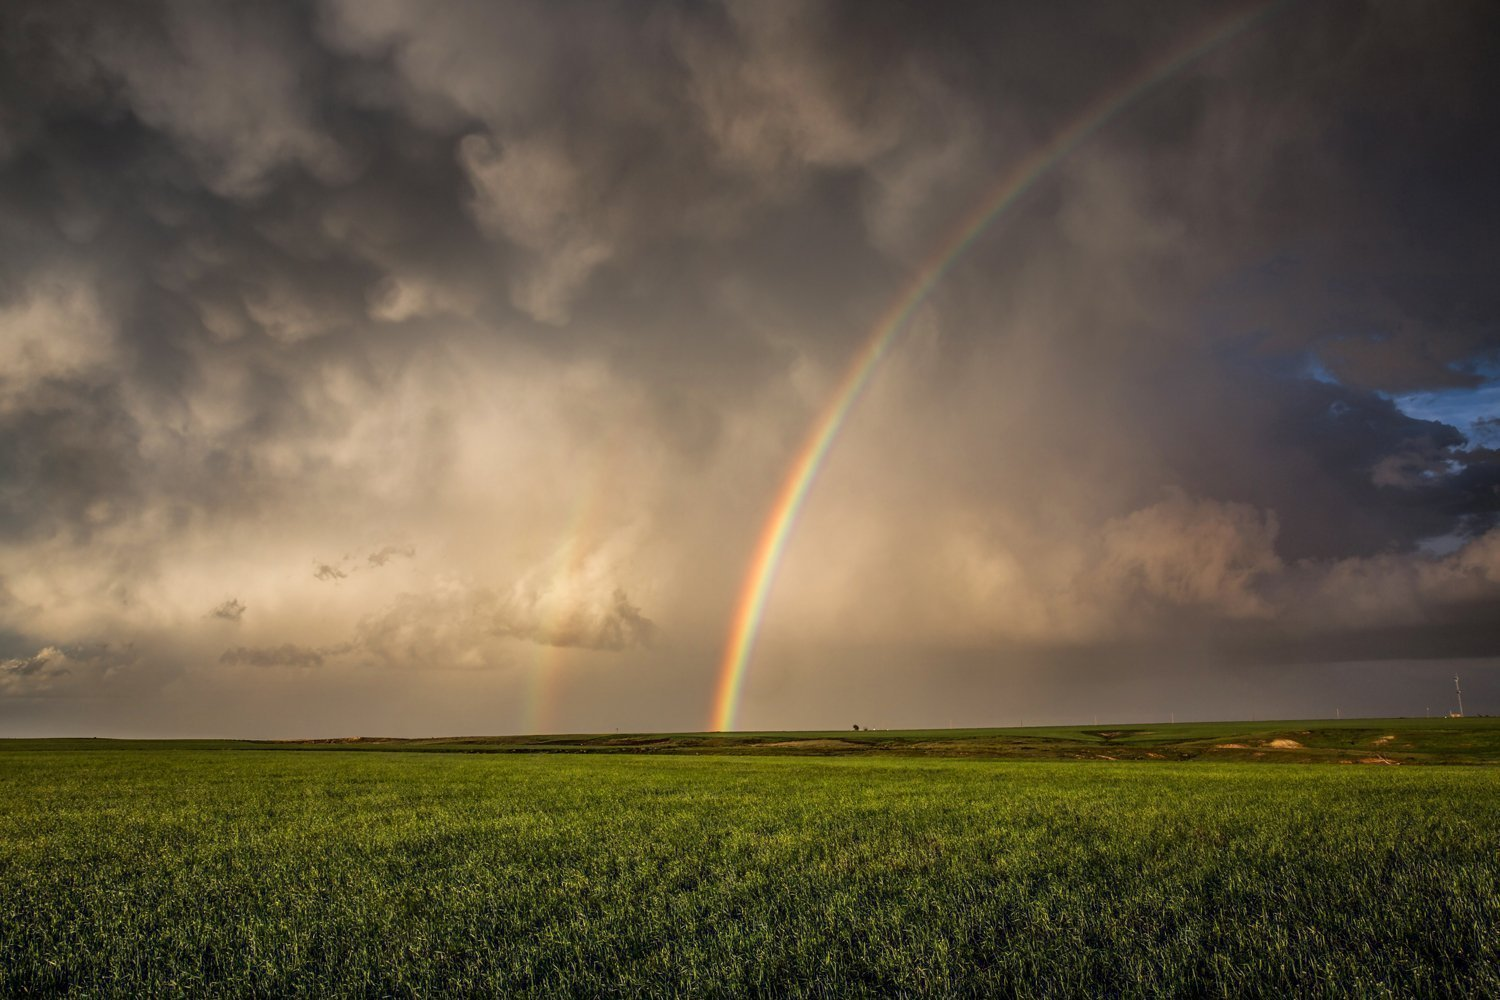 Oklahoma Landscape Photography Art Print - Picture of Brilliant Rainbow During Thunderstorm in Panhandle Whimsical Decor Artwork for Home Decoration 5x7 to 30x45